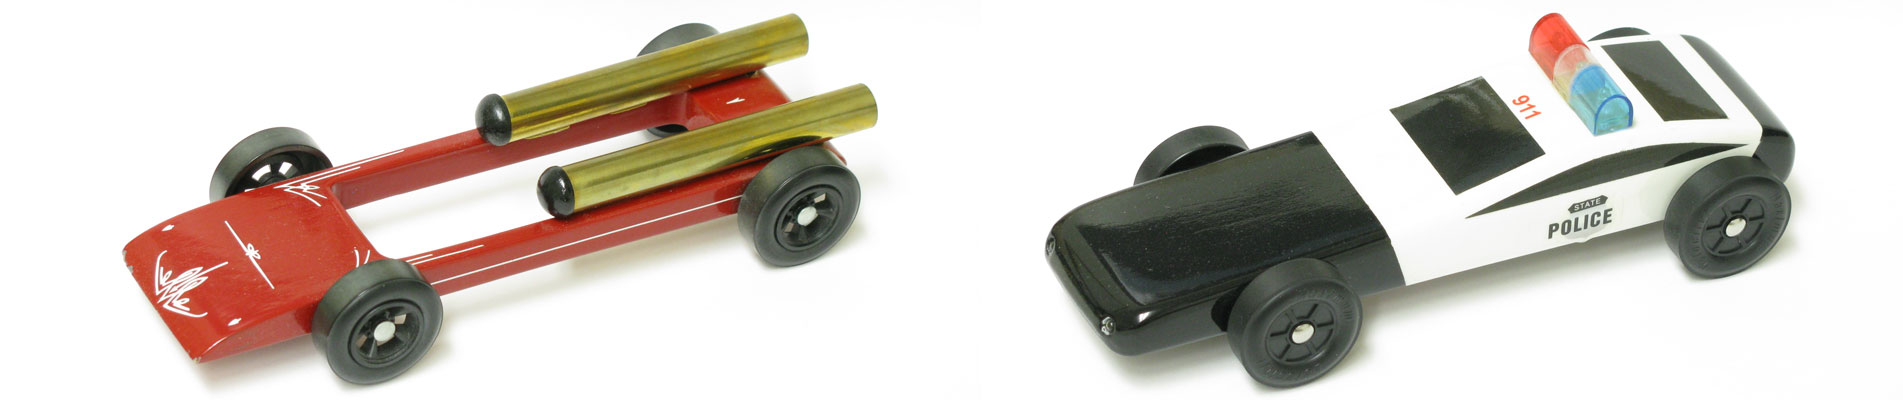 Pinewood Derby Speeder and Police Car Kits